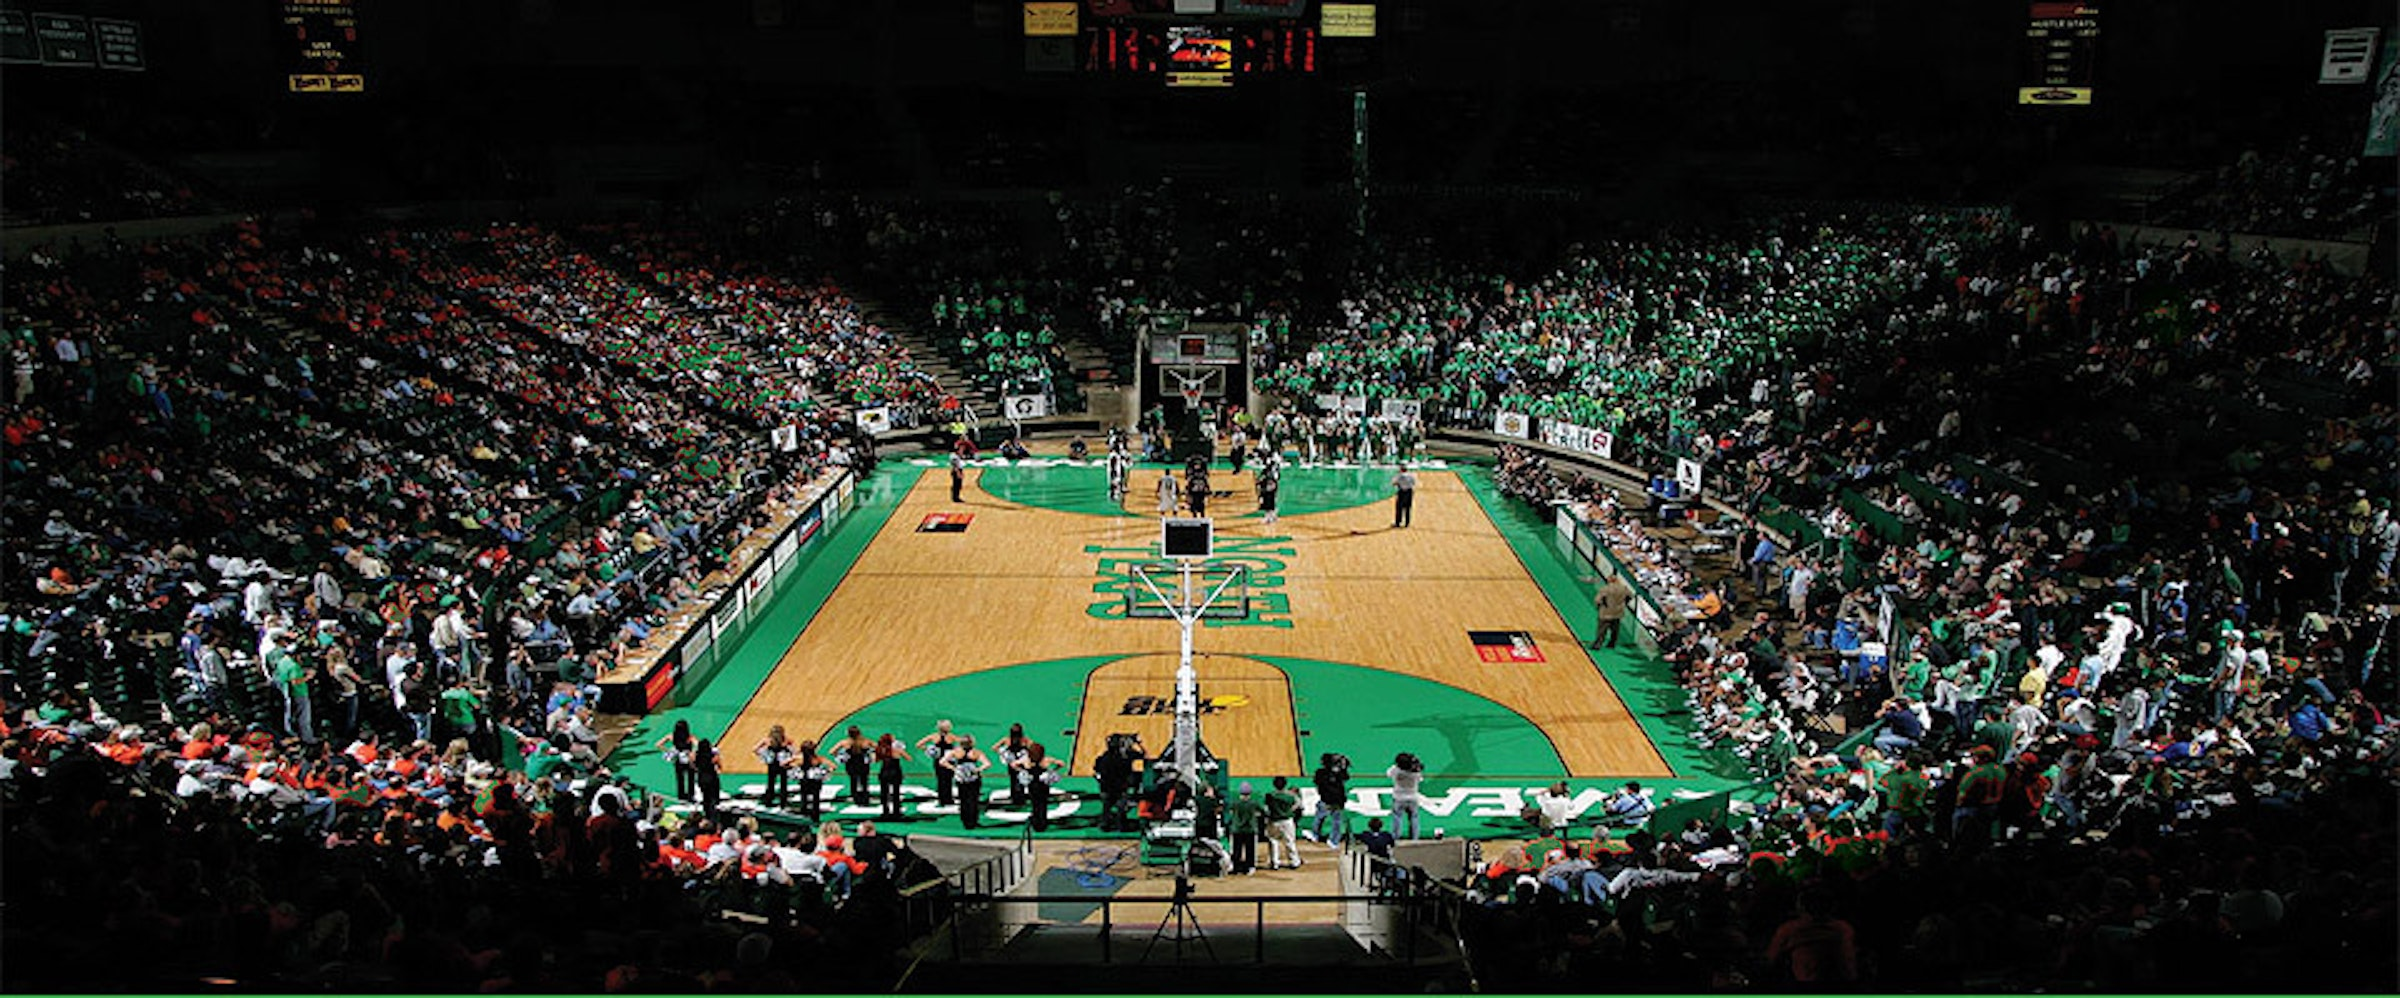 UNT - North Texas Coliseum in Beyond Dallas